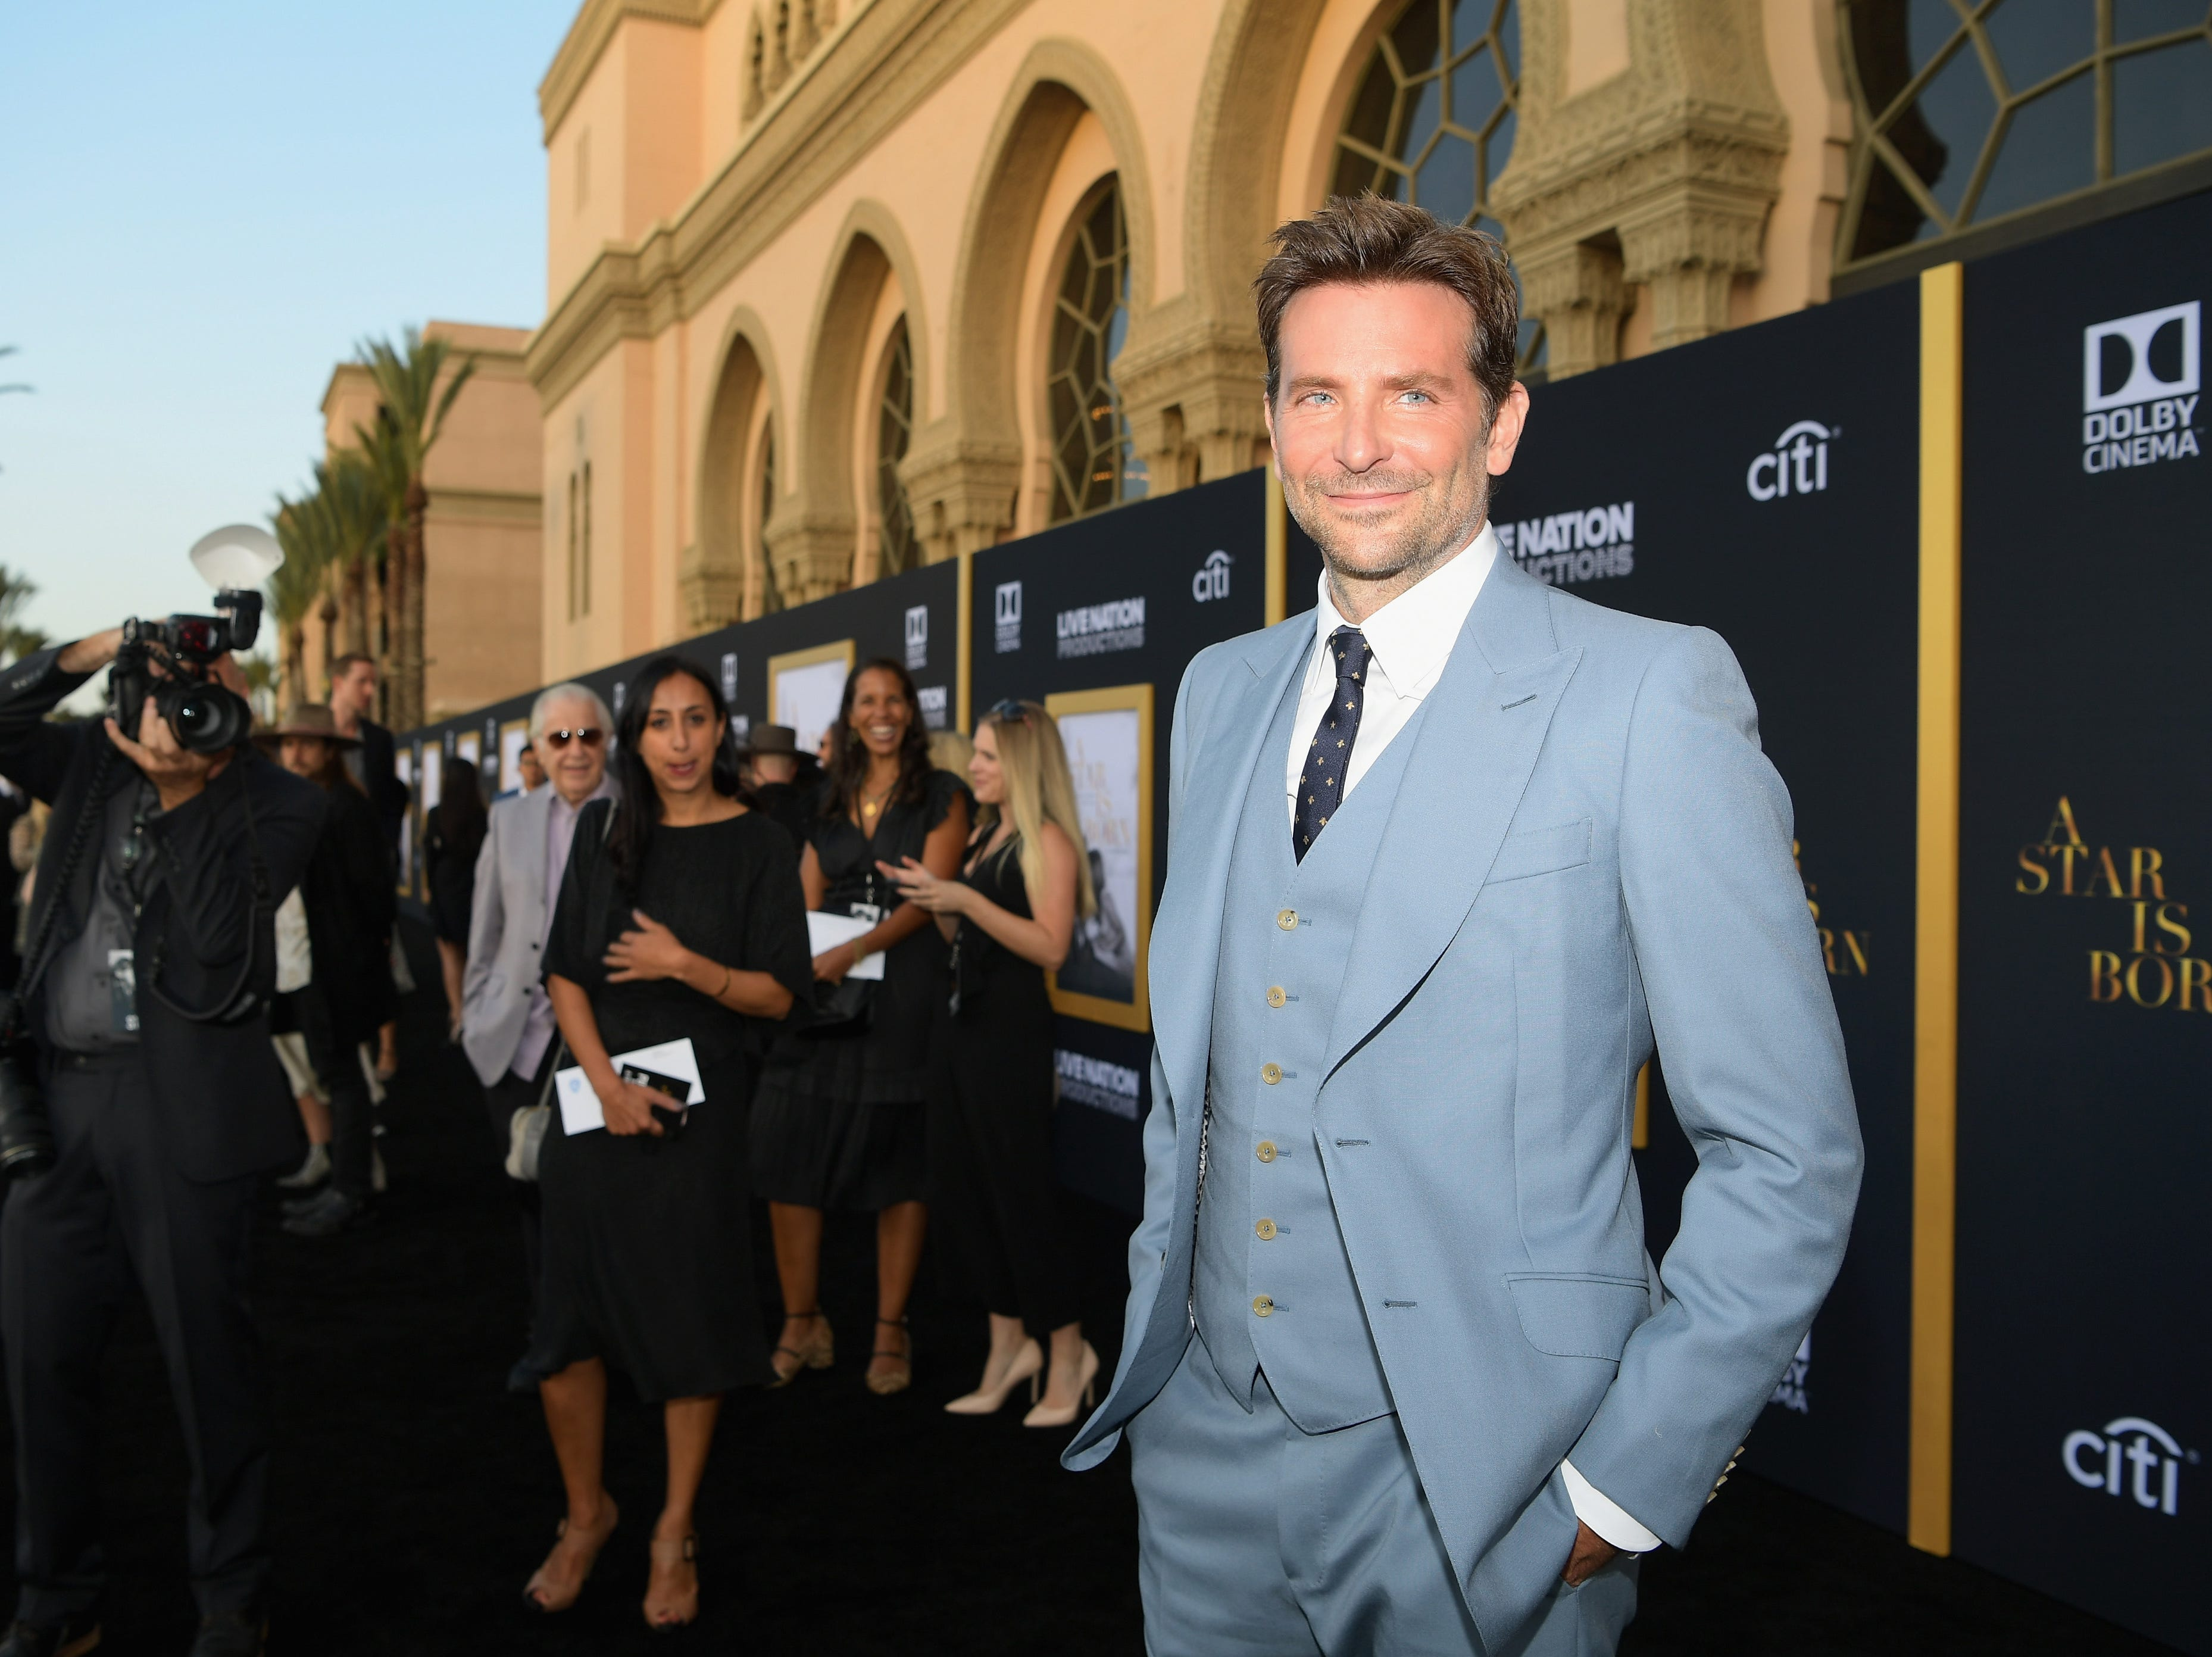 "LOS ANGELES, CA - SEPTEMBER 24:  Bradley Cooper arrives on the red carpet at the Premiere Of Warner Bros. Pictures' ""A Star Is Born"" at The Shrine Auditorium on September 24, 2018 in Los Angeles, California.  (Photo by Emma McIntyre/Getty Images) ORG XMIT: 775229471 ORIG FILE ID: 1039664948"